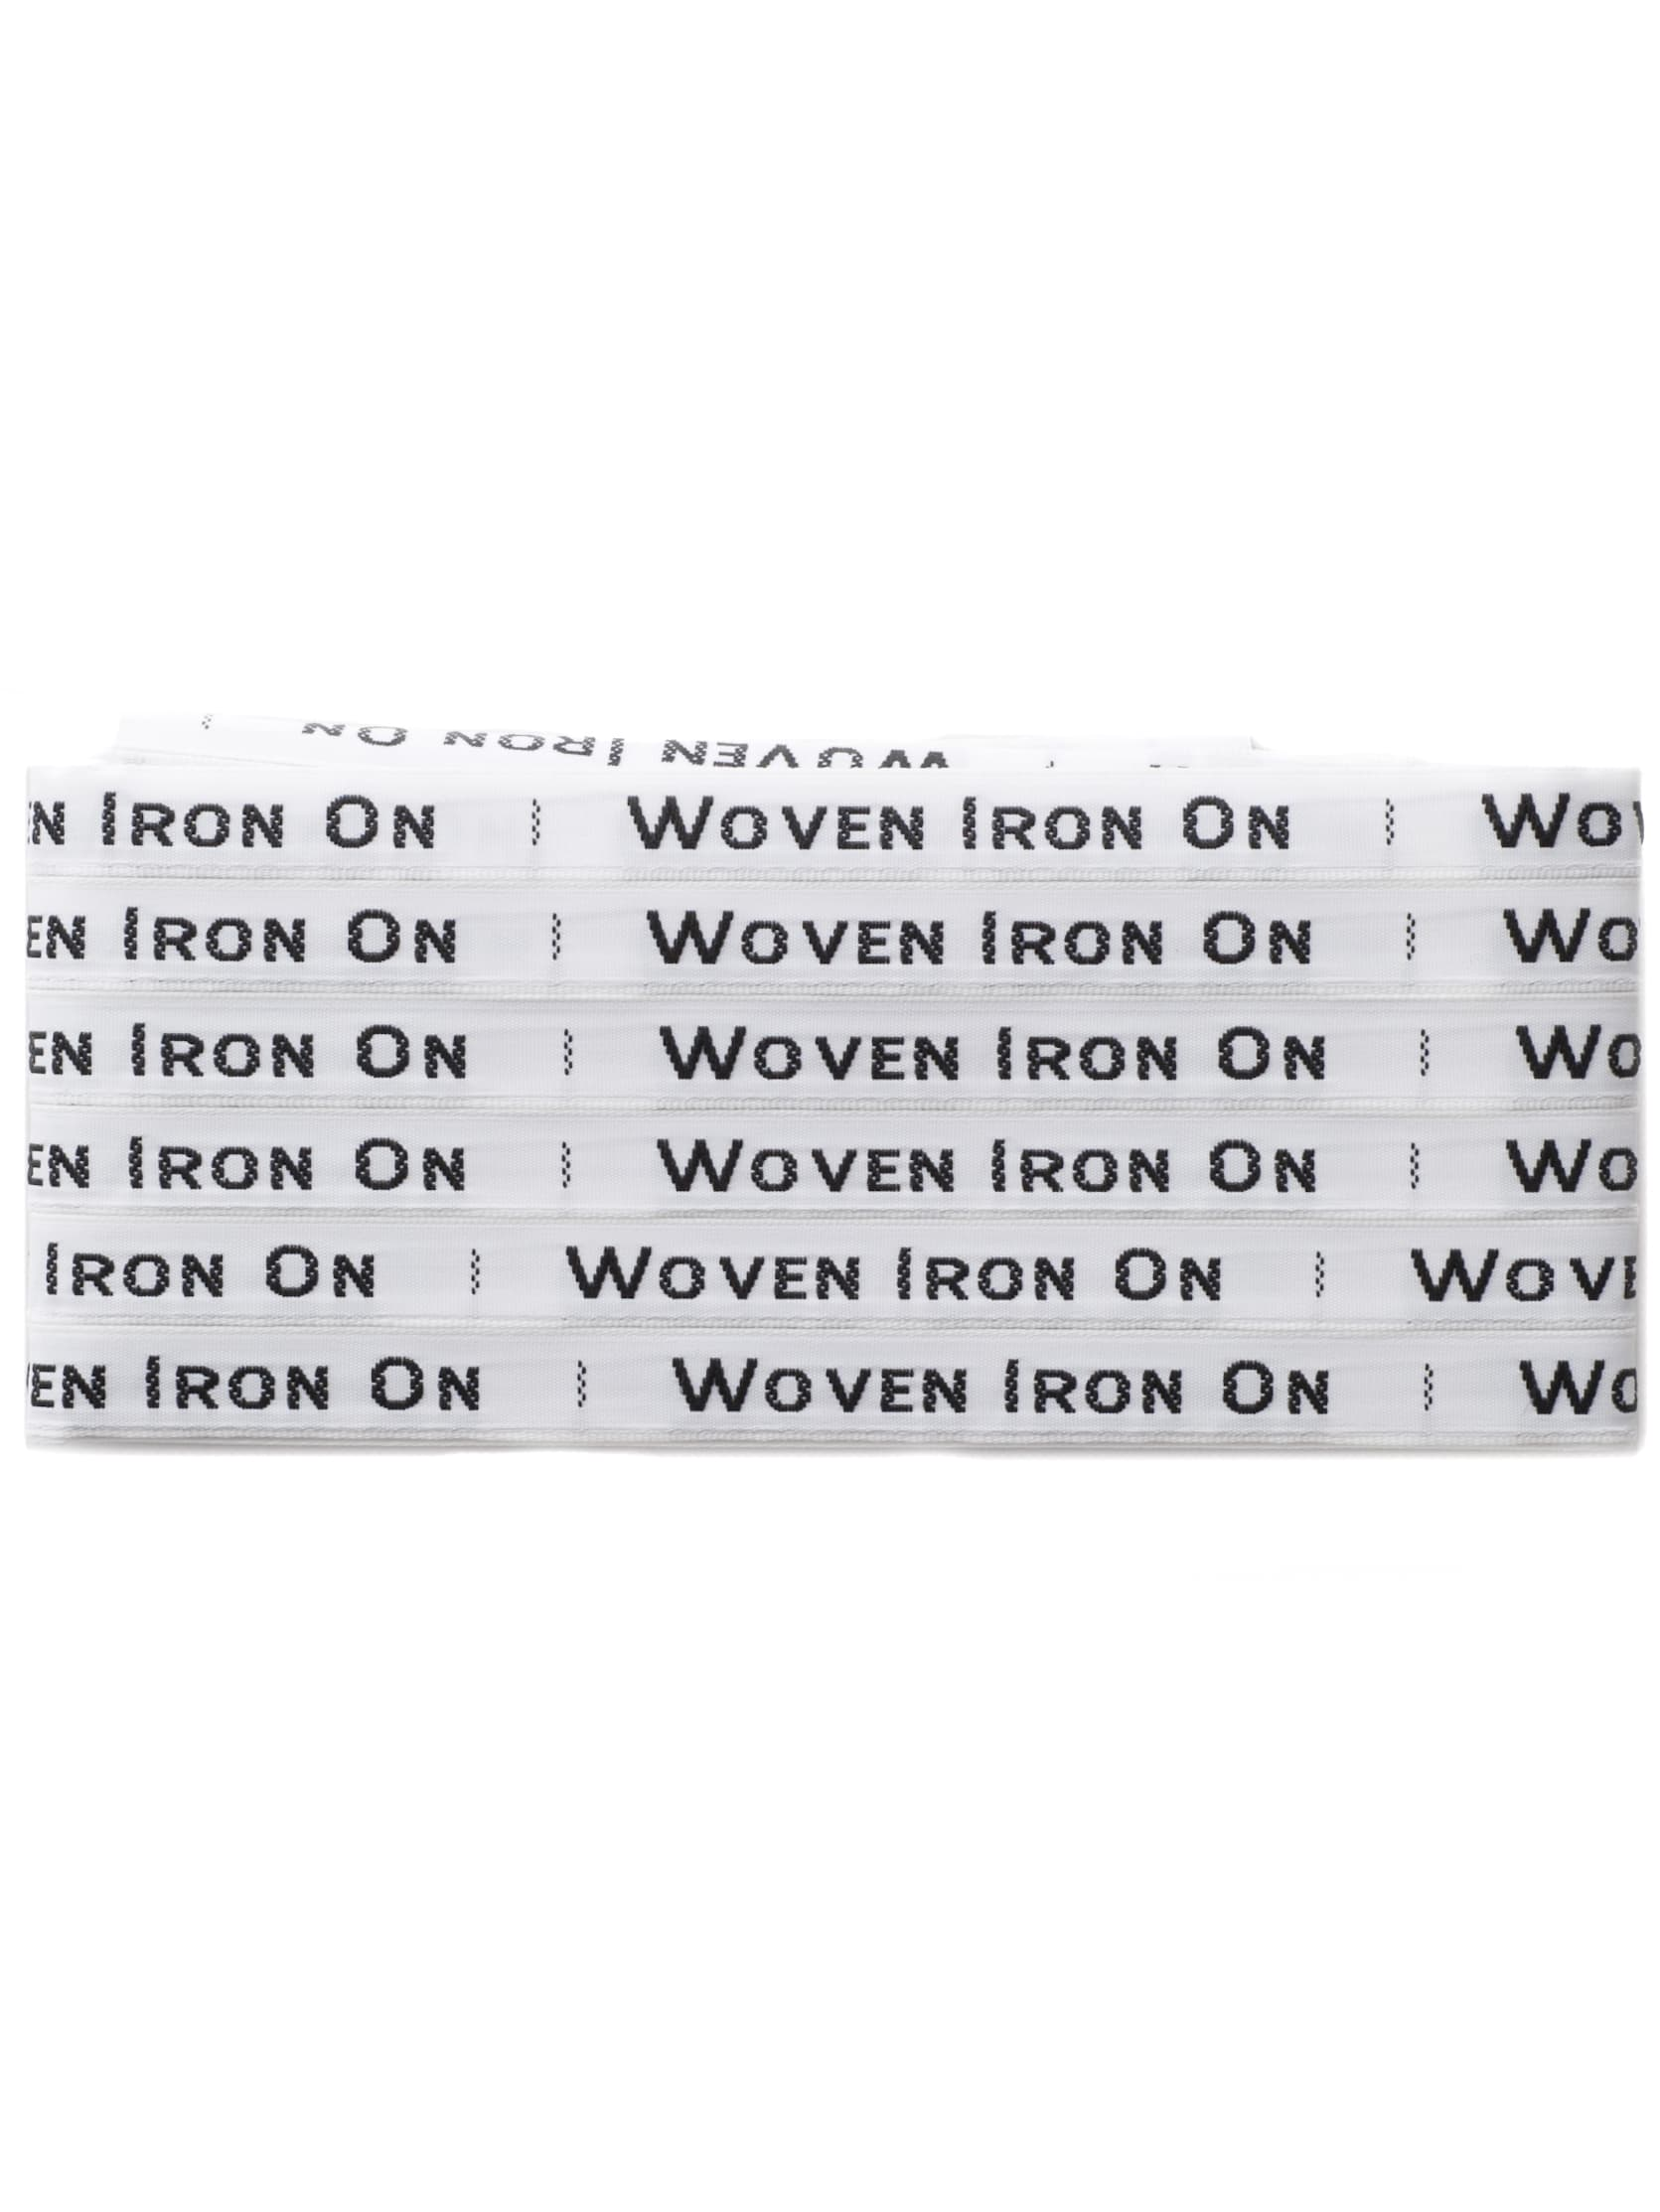 Woven Iron On Labels